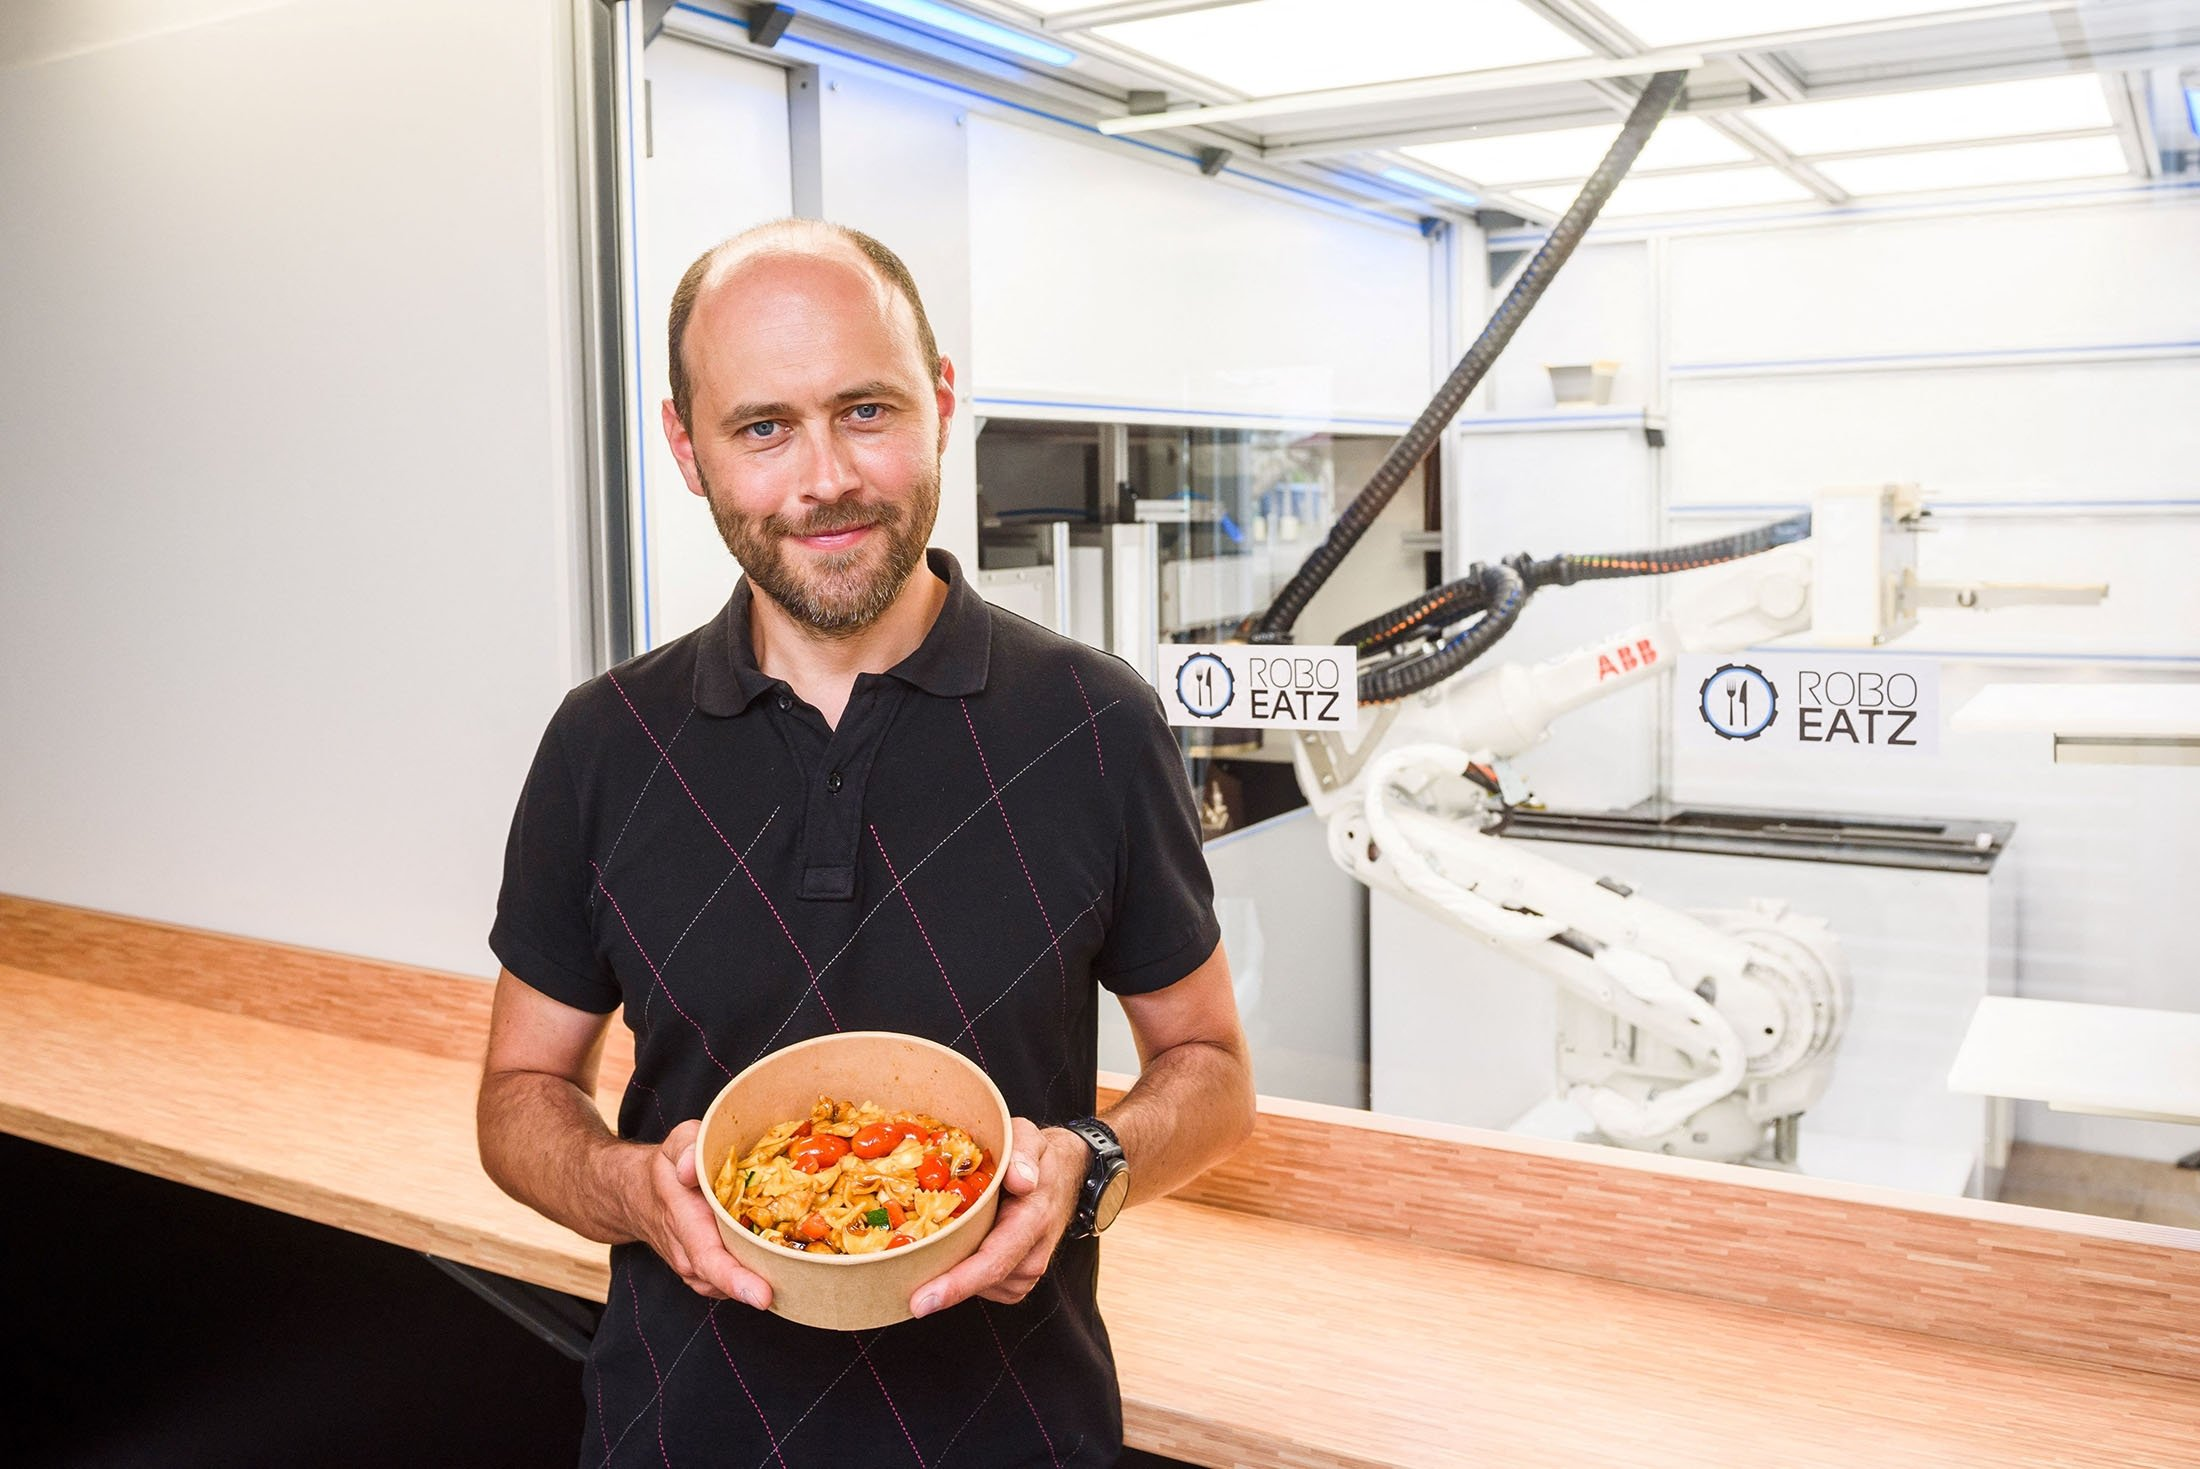 CEO and co-founder of Roboeatz, Konstantins Korcjomkins poses for photos at the Roboeatz eatery in Riga, Latvia, May 25, 2021. (AFP Photo)